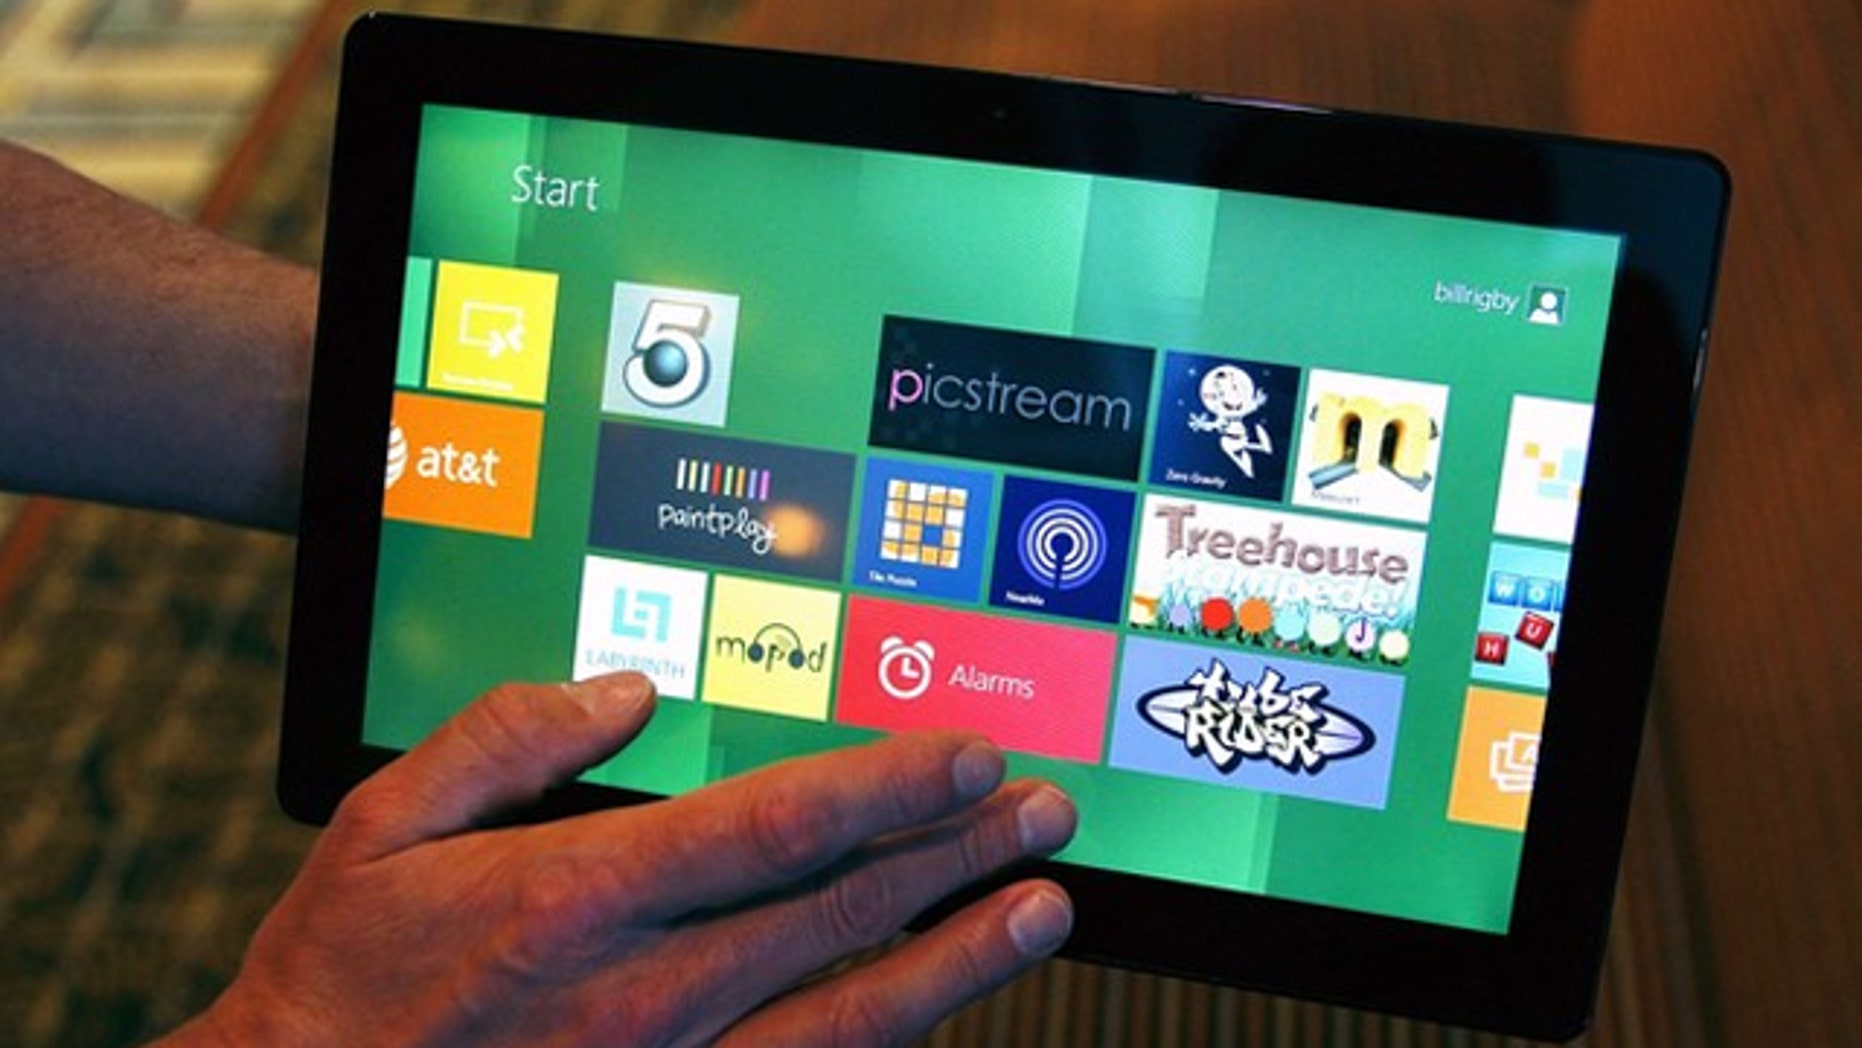 Windows 8 will launch with an app marketplace, Microsoft revealed.